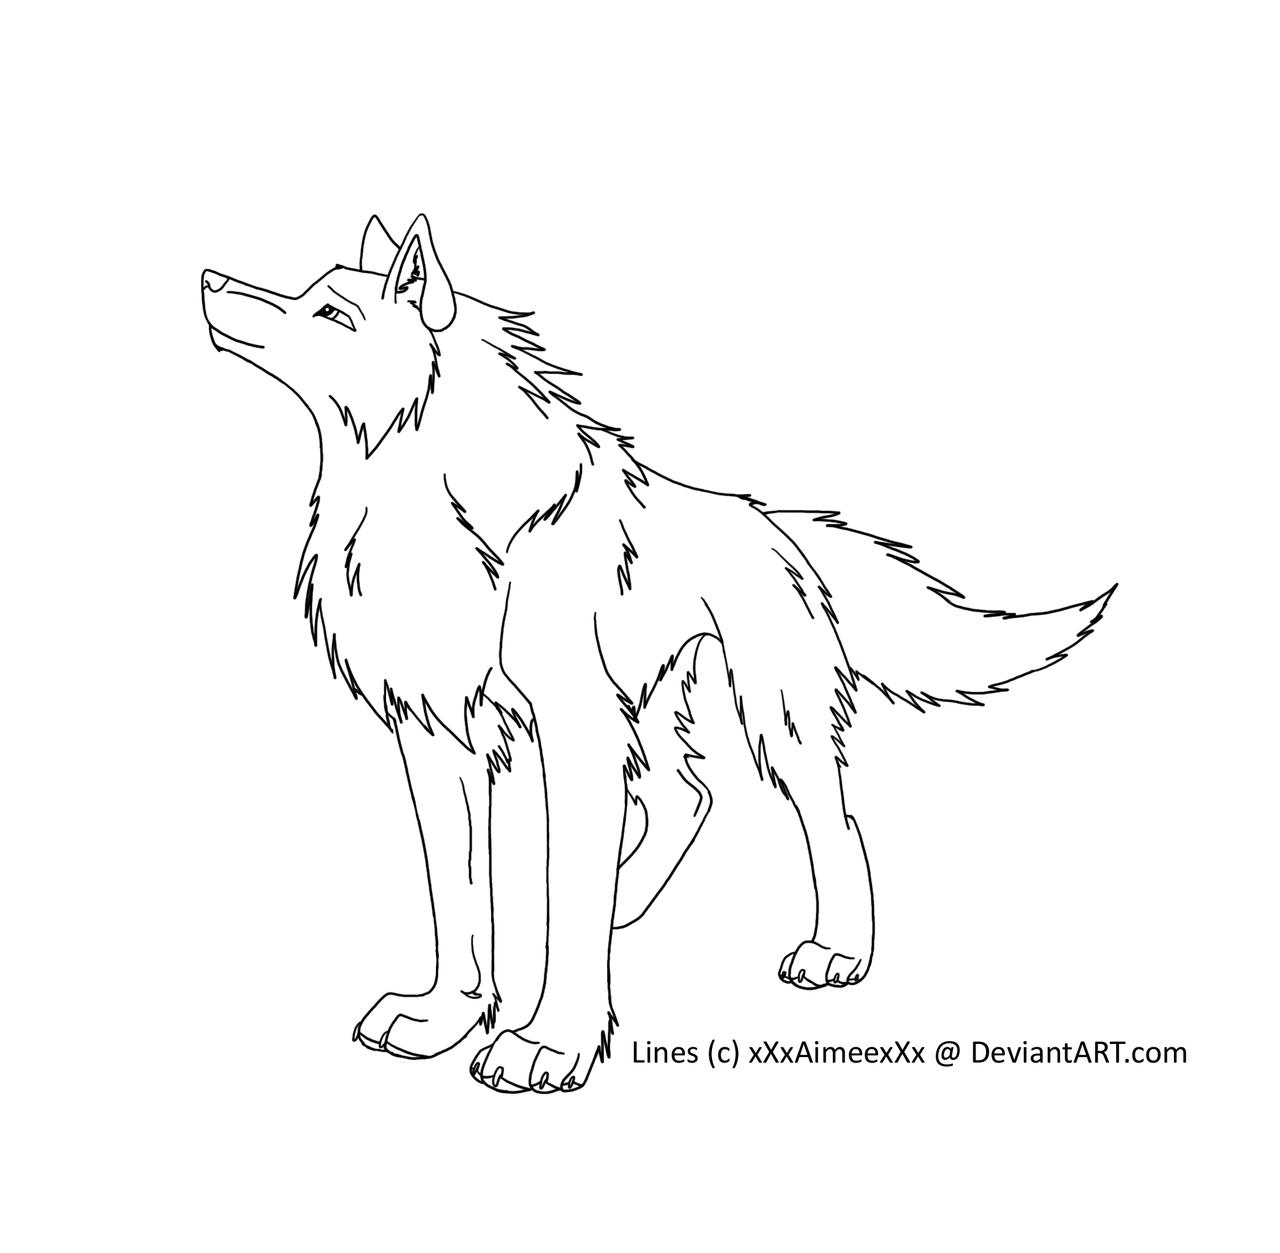 Wolf Lineart : Wolf lineart by xxxaimeexxx on deviantart